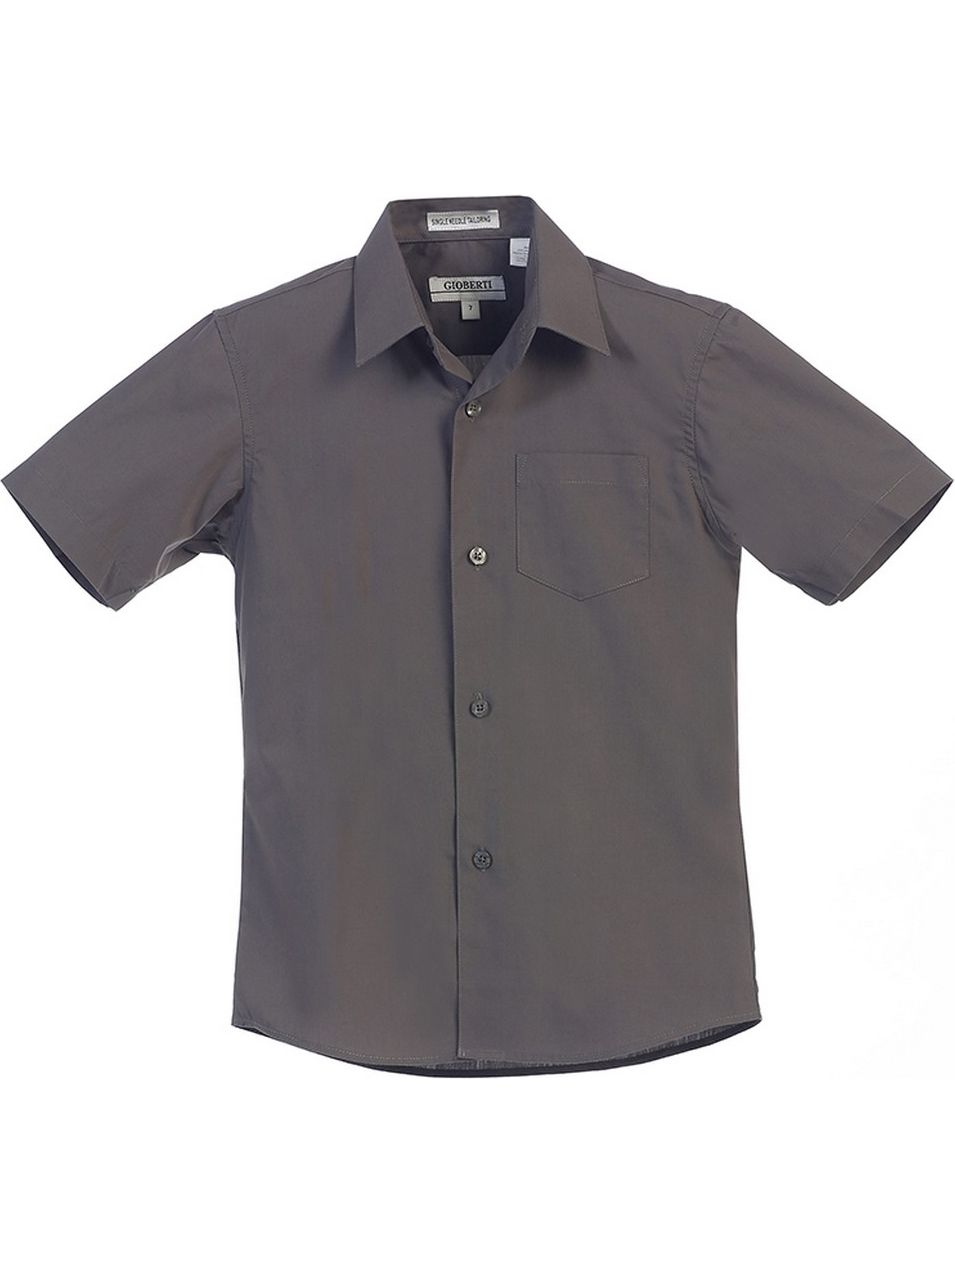 Gioberti Little Boys Dark Grey Solid Color Button Down Short Sleeved Shirt